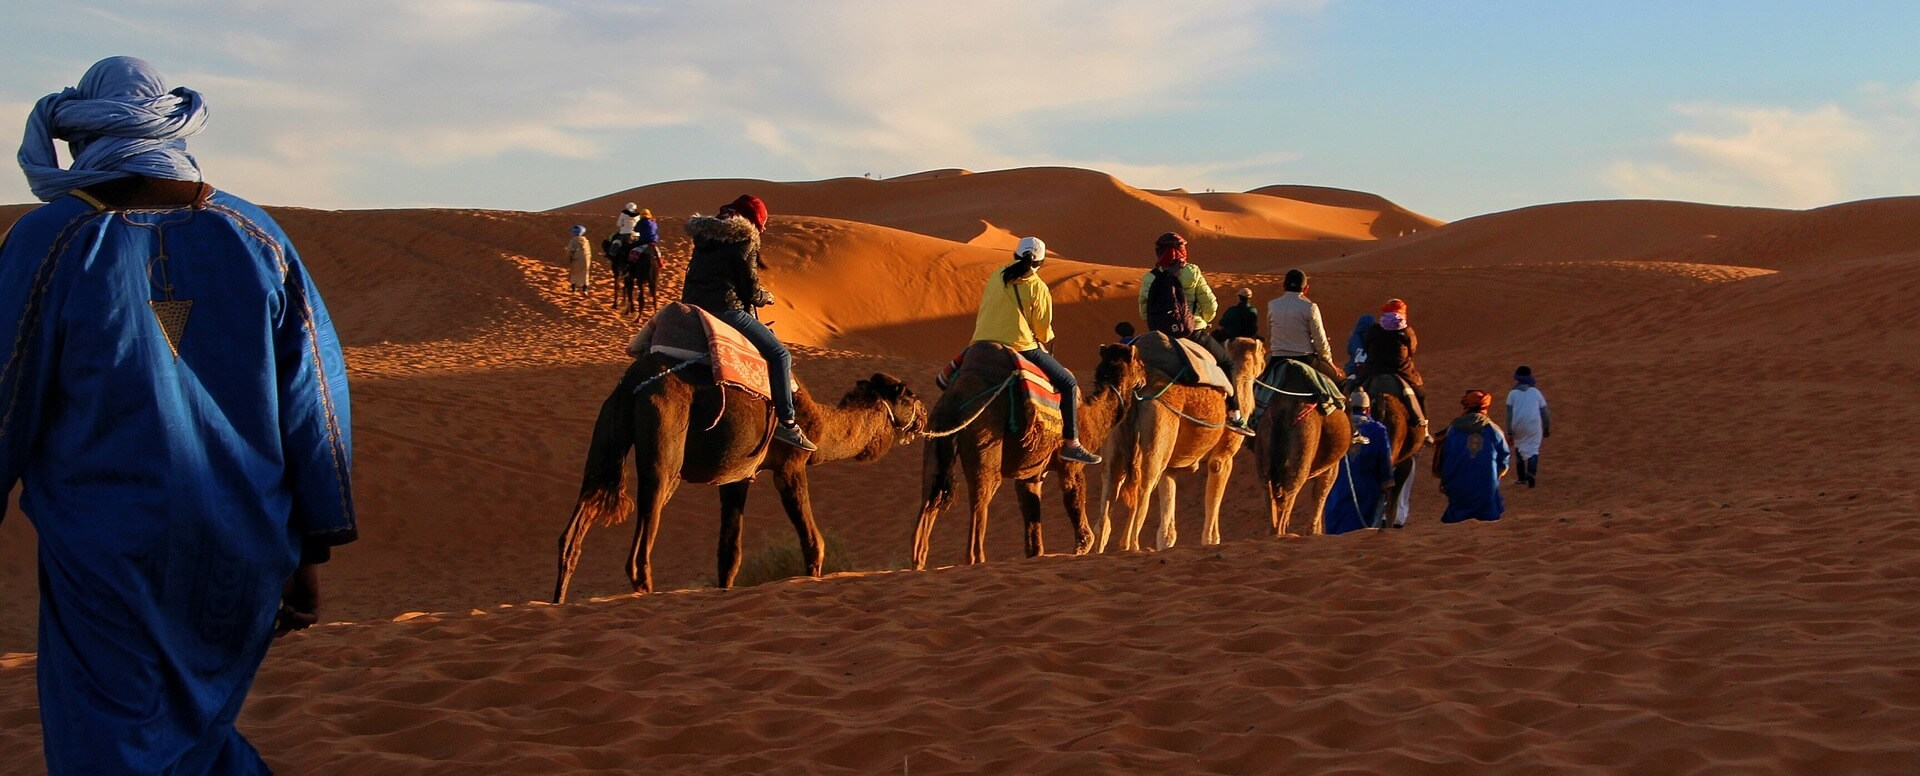 Things that are a 'must-see' in Morocco - Morocco